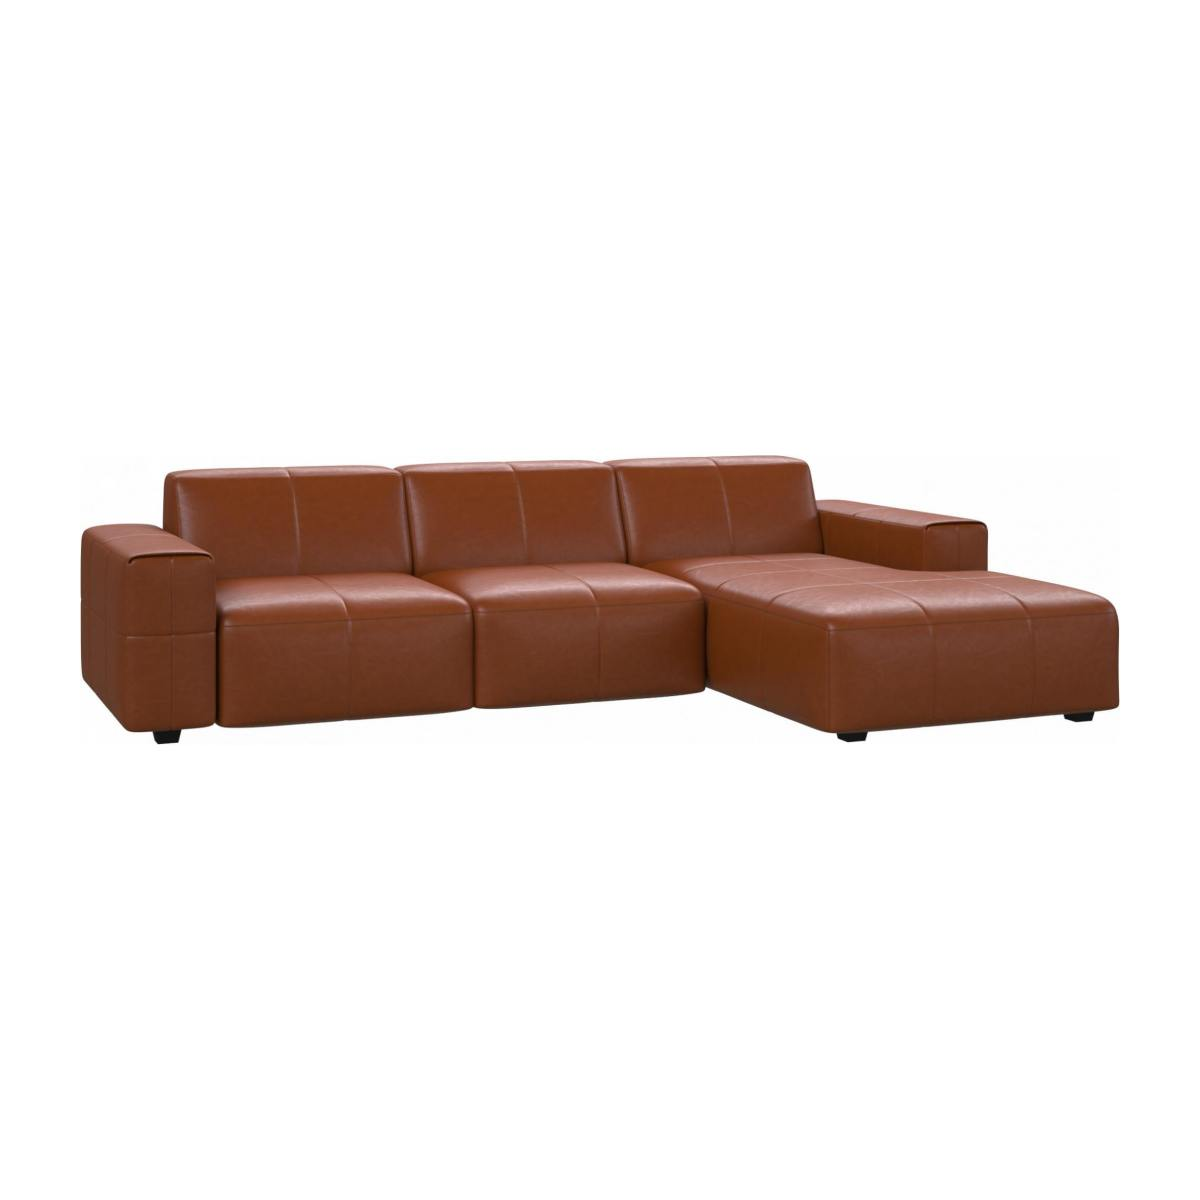 3 seater sofa with chaise longue on the right in Vintage aniline leather, old chestnut n°2